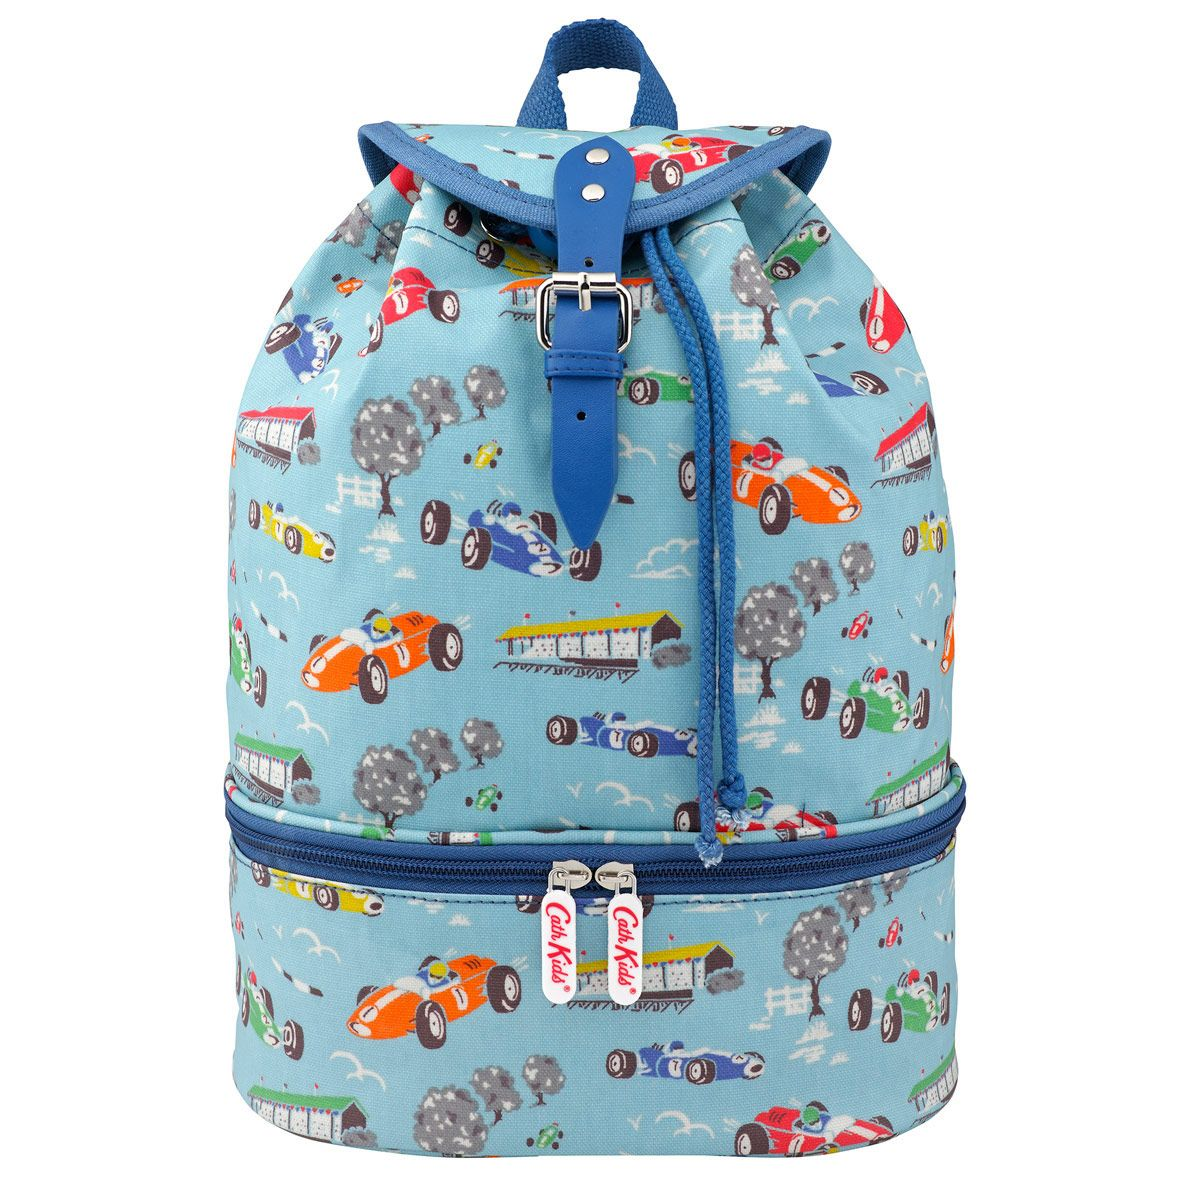 Racing Cars Kids Drawstring Sports Backpack | Kids Bags ...